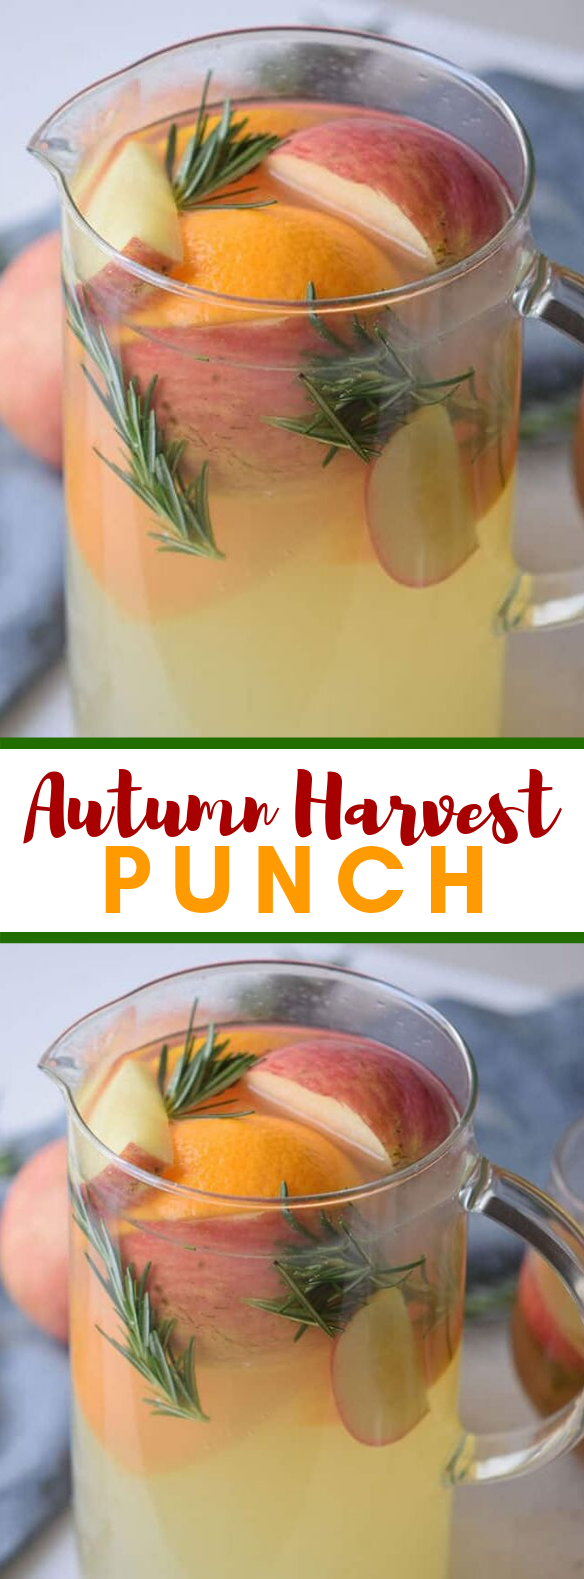 Autumn Harvest Punch Recipe (Mocktail) #drinks #kidfriendly